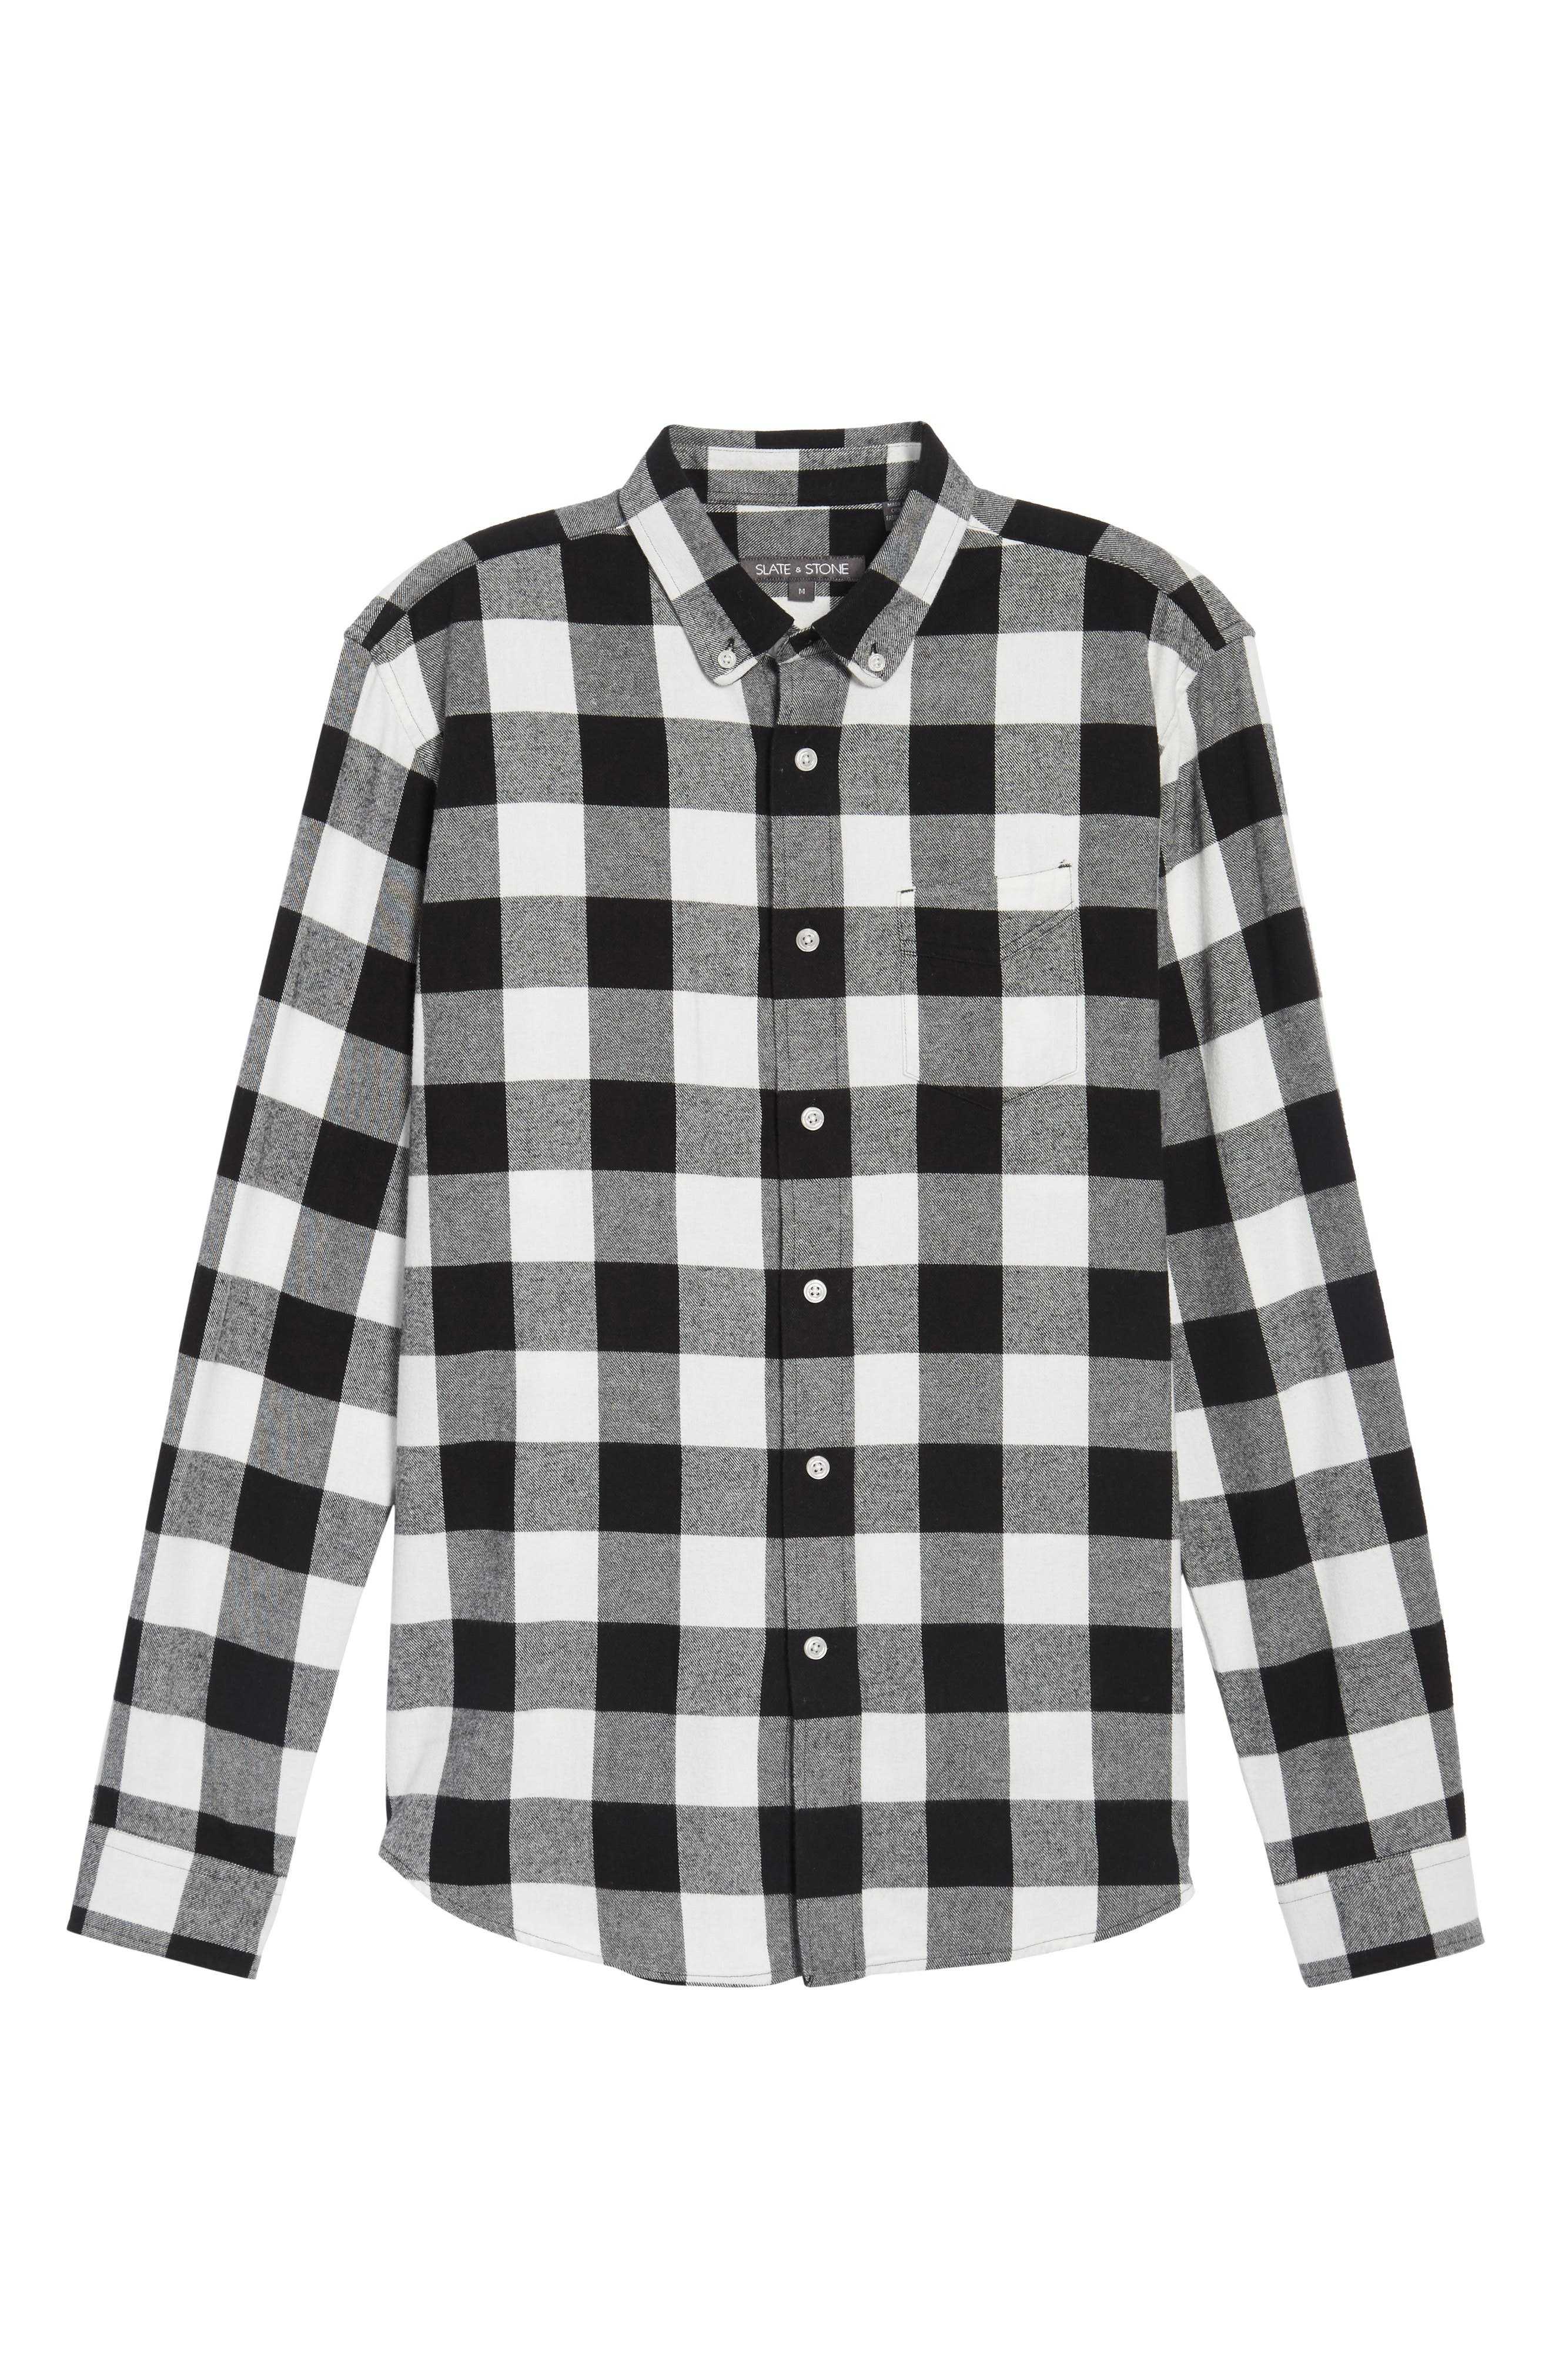 Trim Fit Buffalo Plaid Flannel Sport Shirt,                             Alternate thumbnail 6, color,                             Black/ White Buffalo Plaid